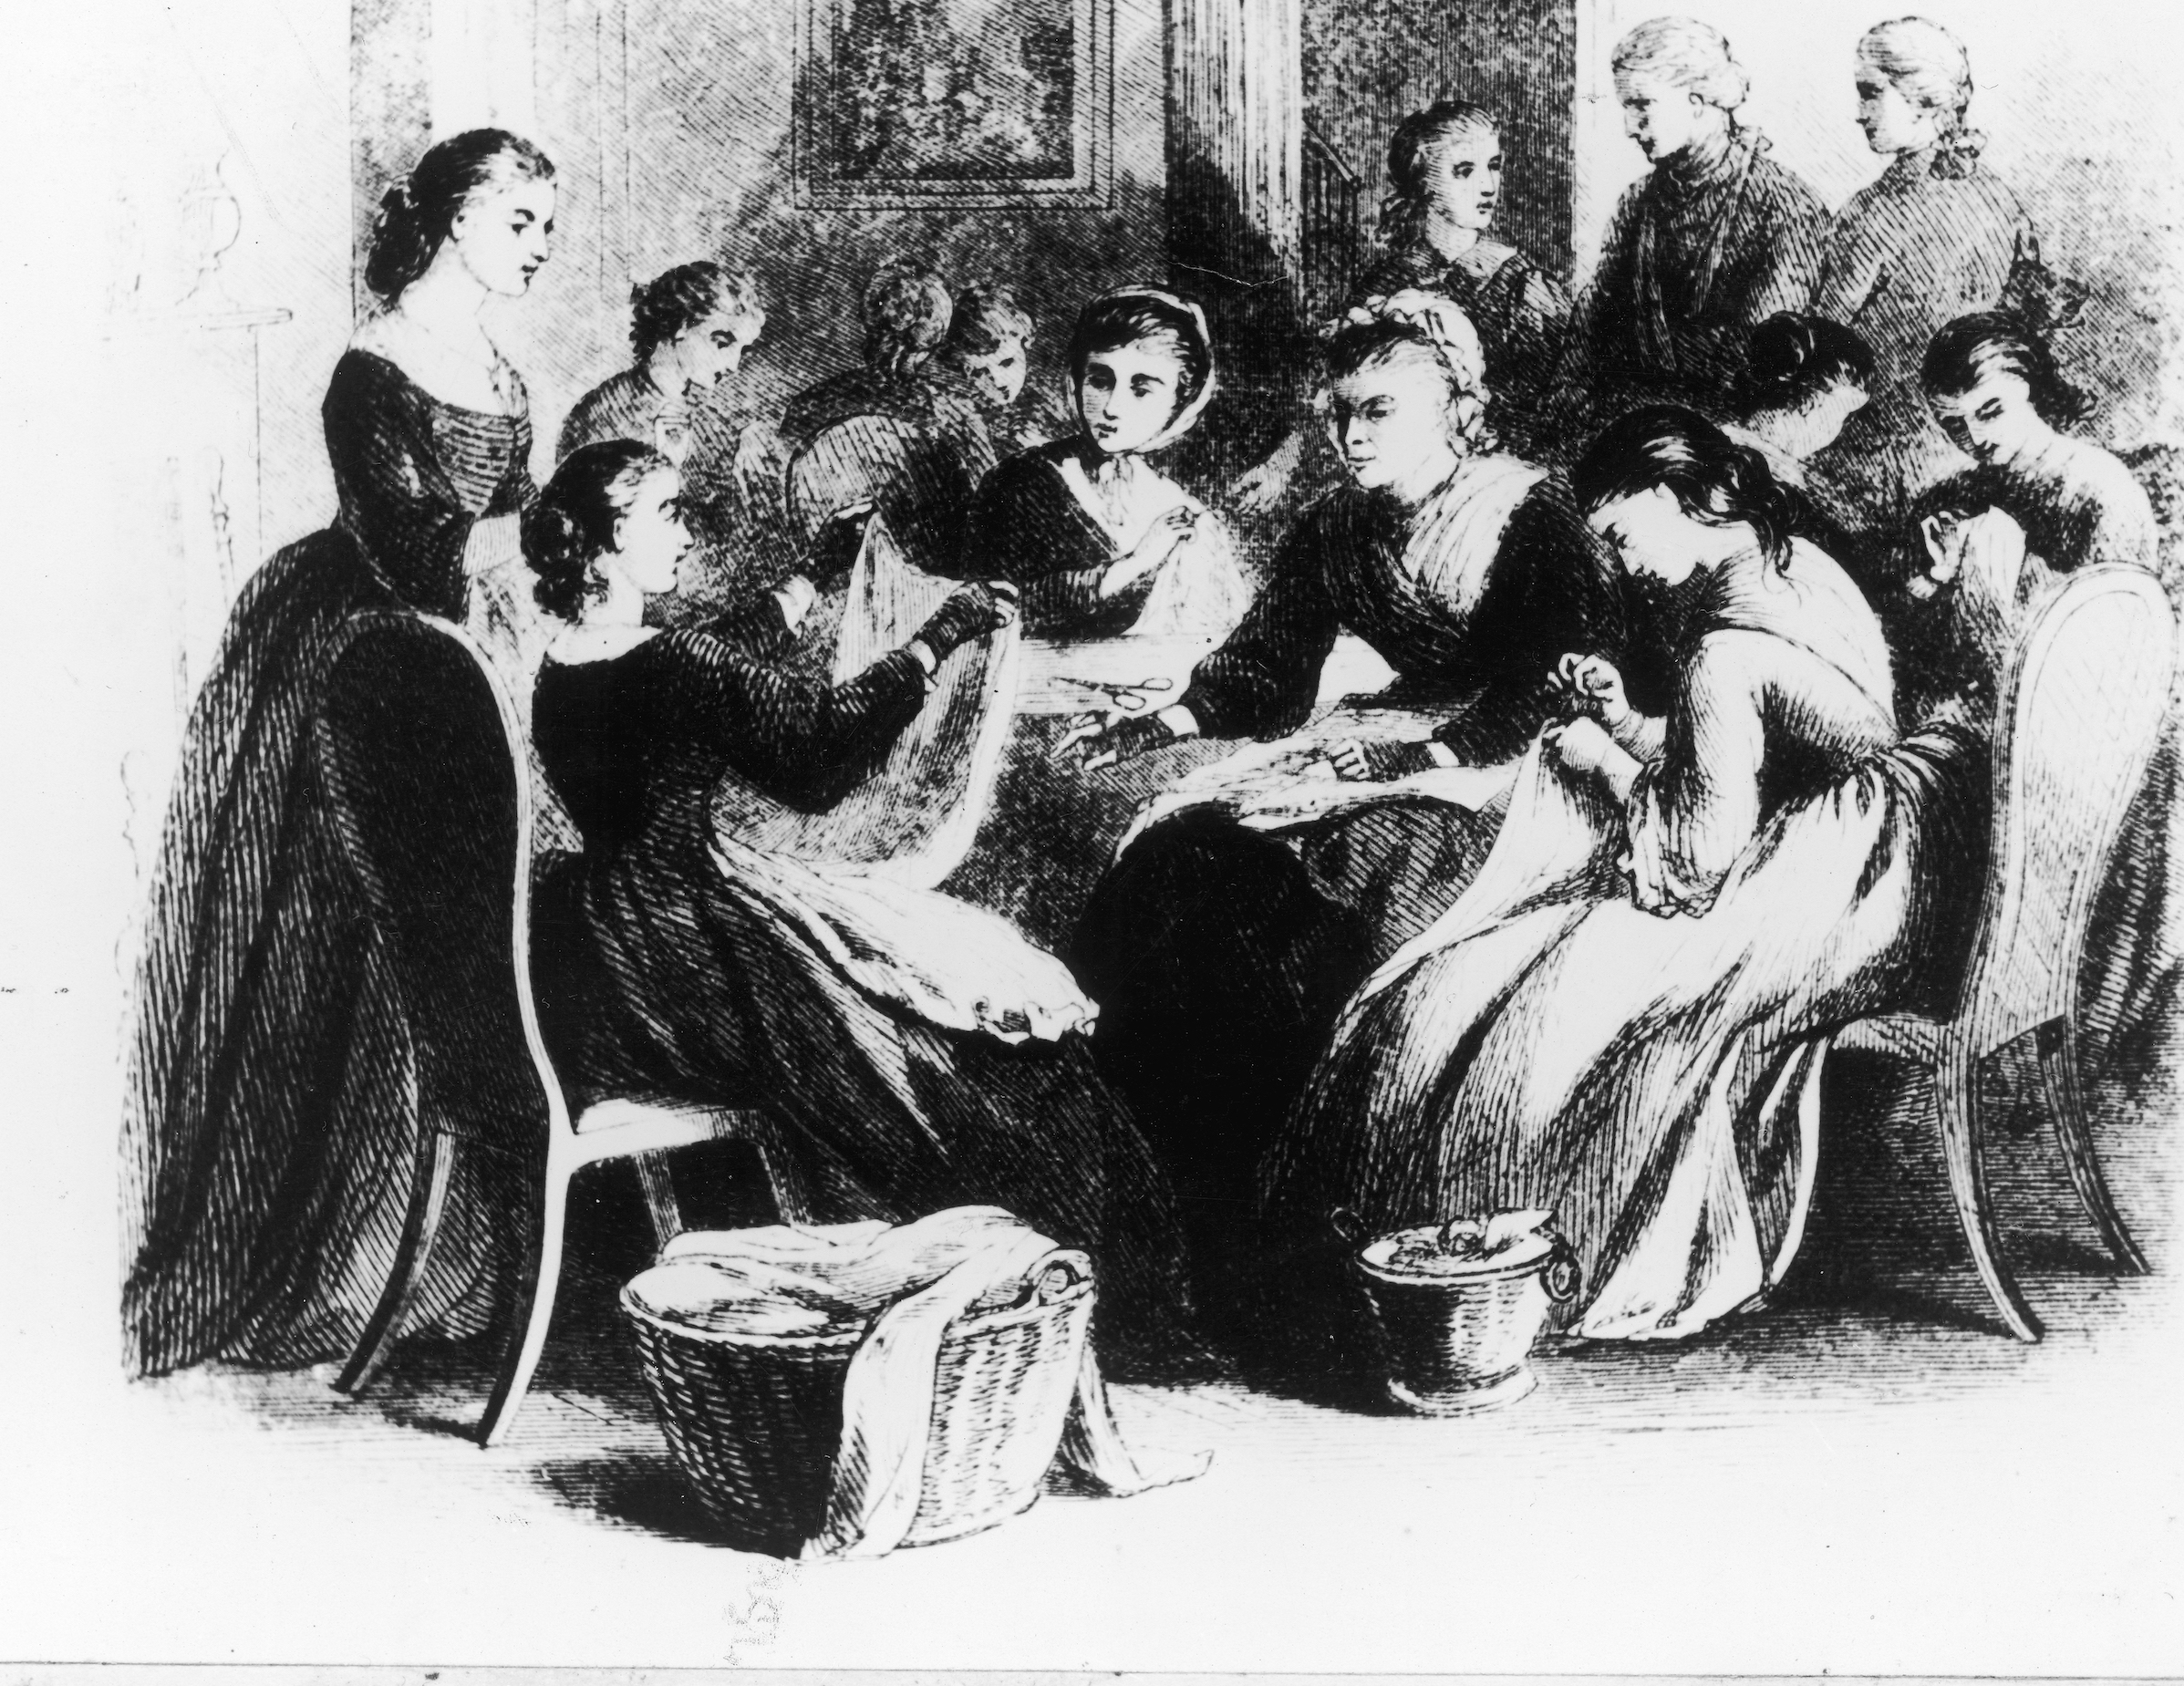 Woodcut depicting the ladies of Philadelphia working for Washington's Army, in 1780.